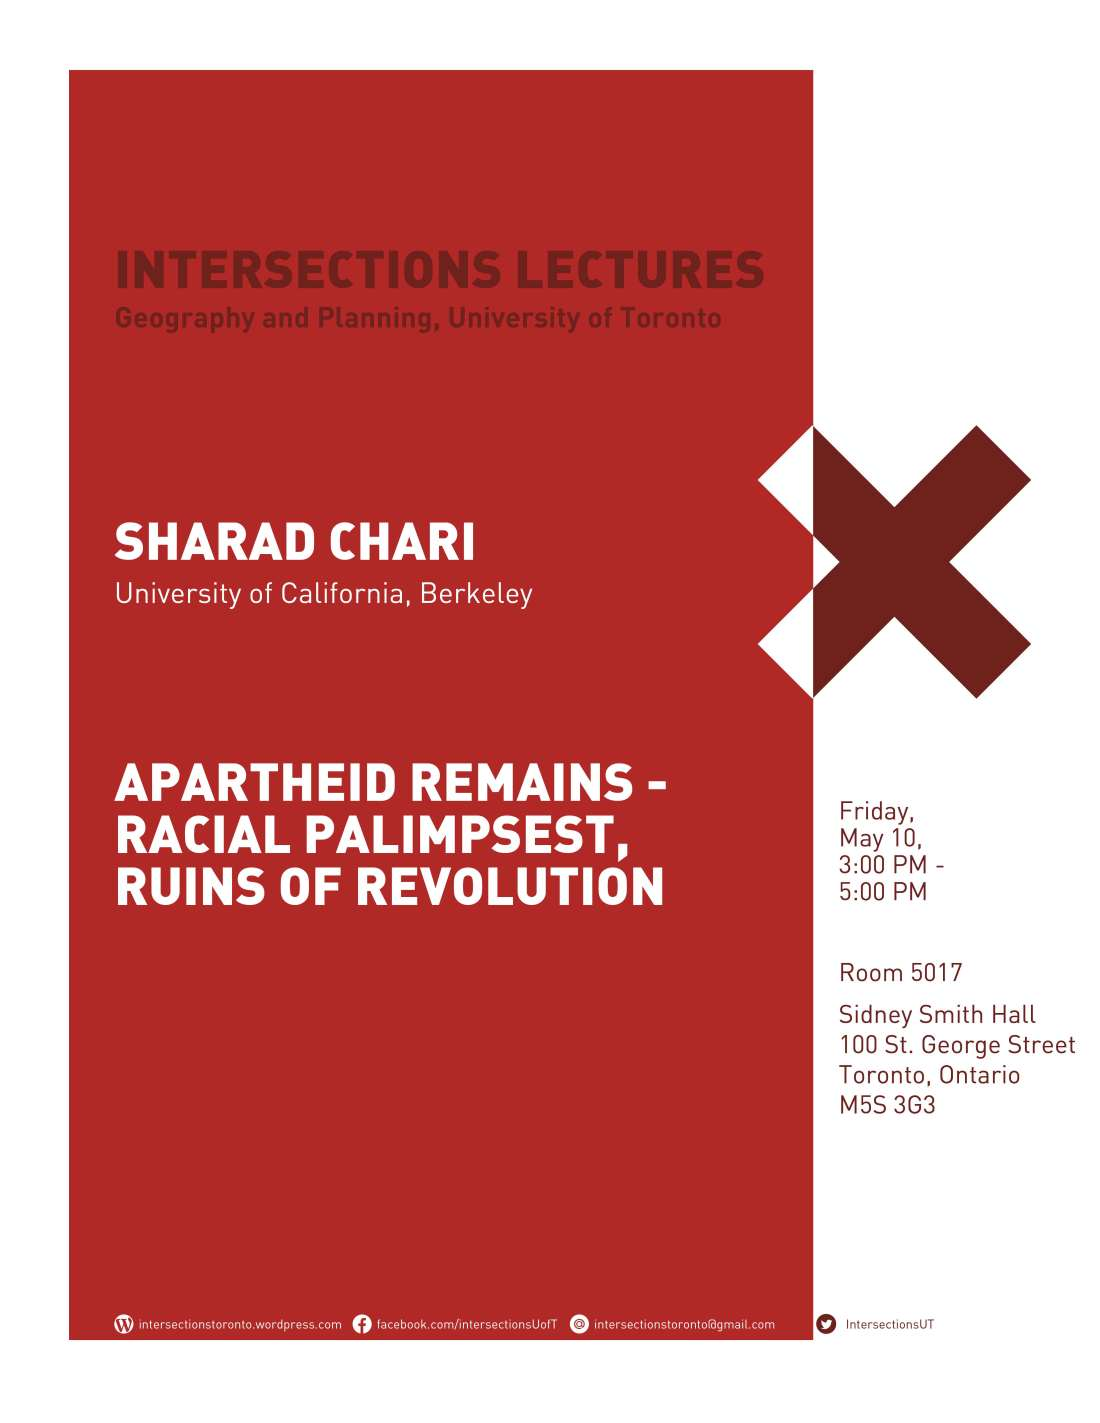 Intersections 2018-19 Posters_Sharad Chari